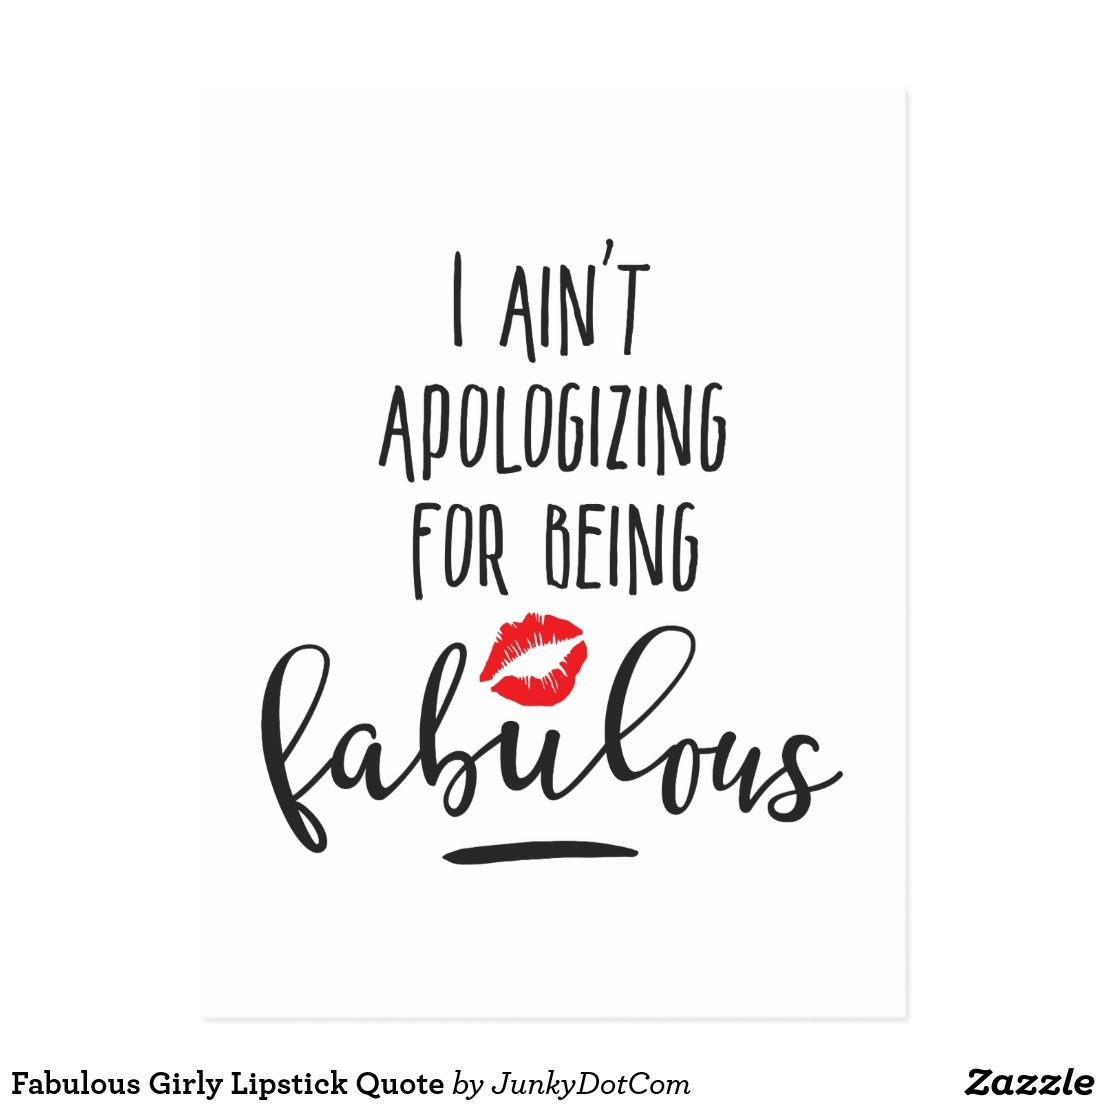 Lipstick Quotes Fabulous Girly Lipstick Quote Postcard Juli 6 2017 Zazzle